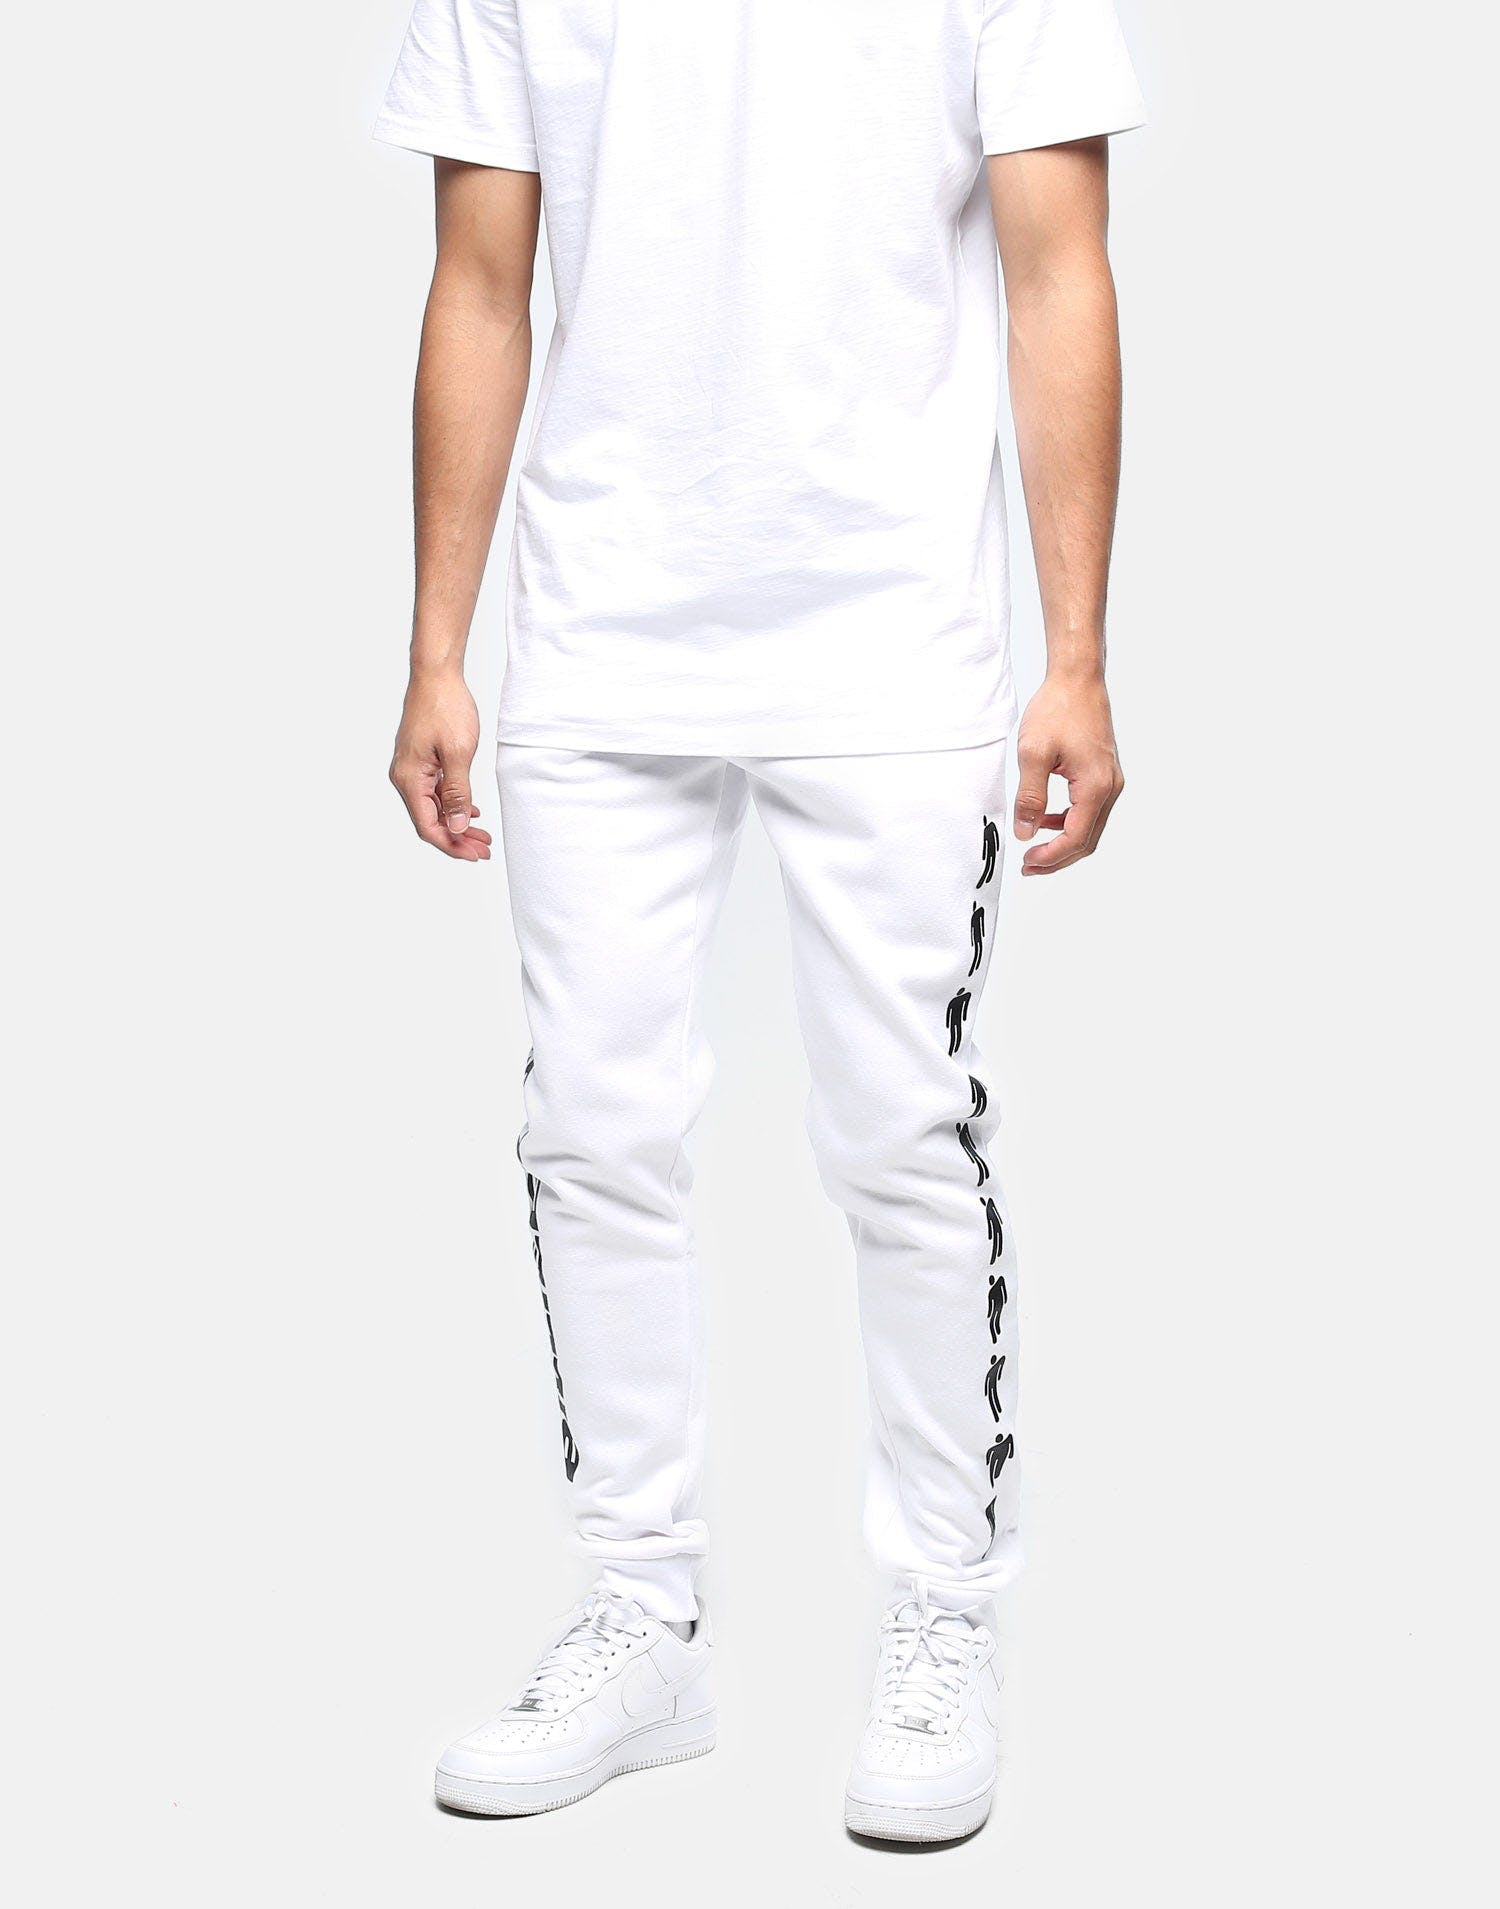 Billie Eilish Billieeilish Track Pants White Culture Kings